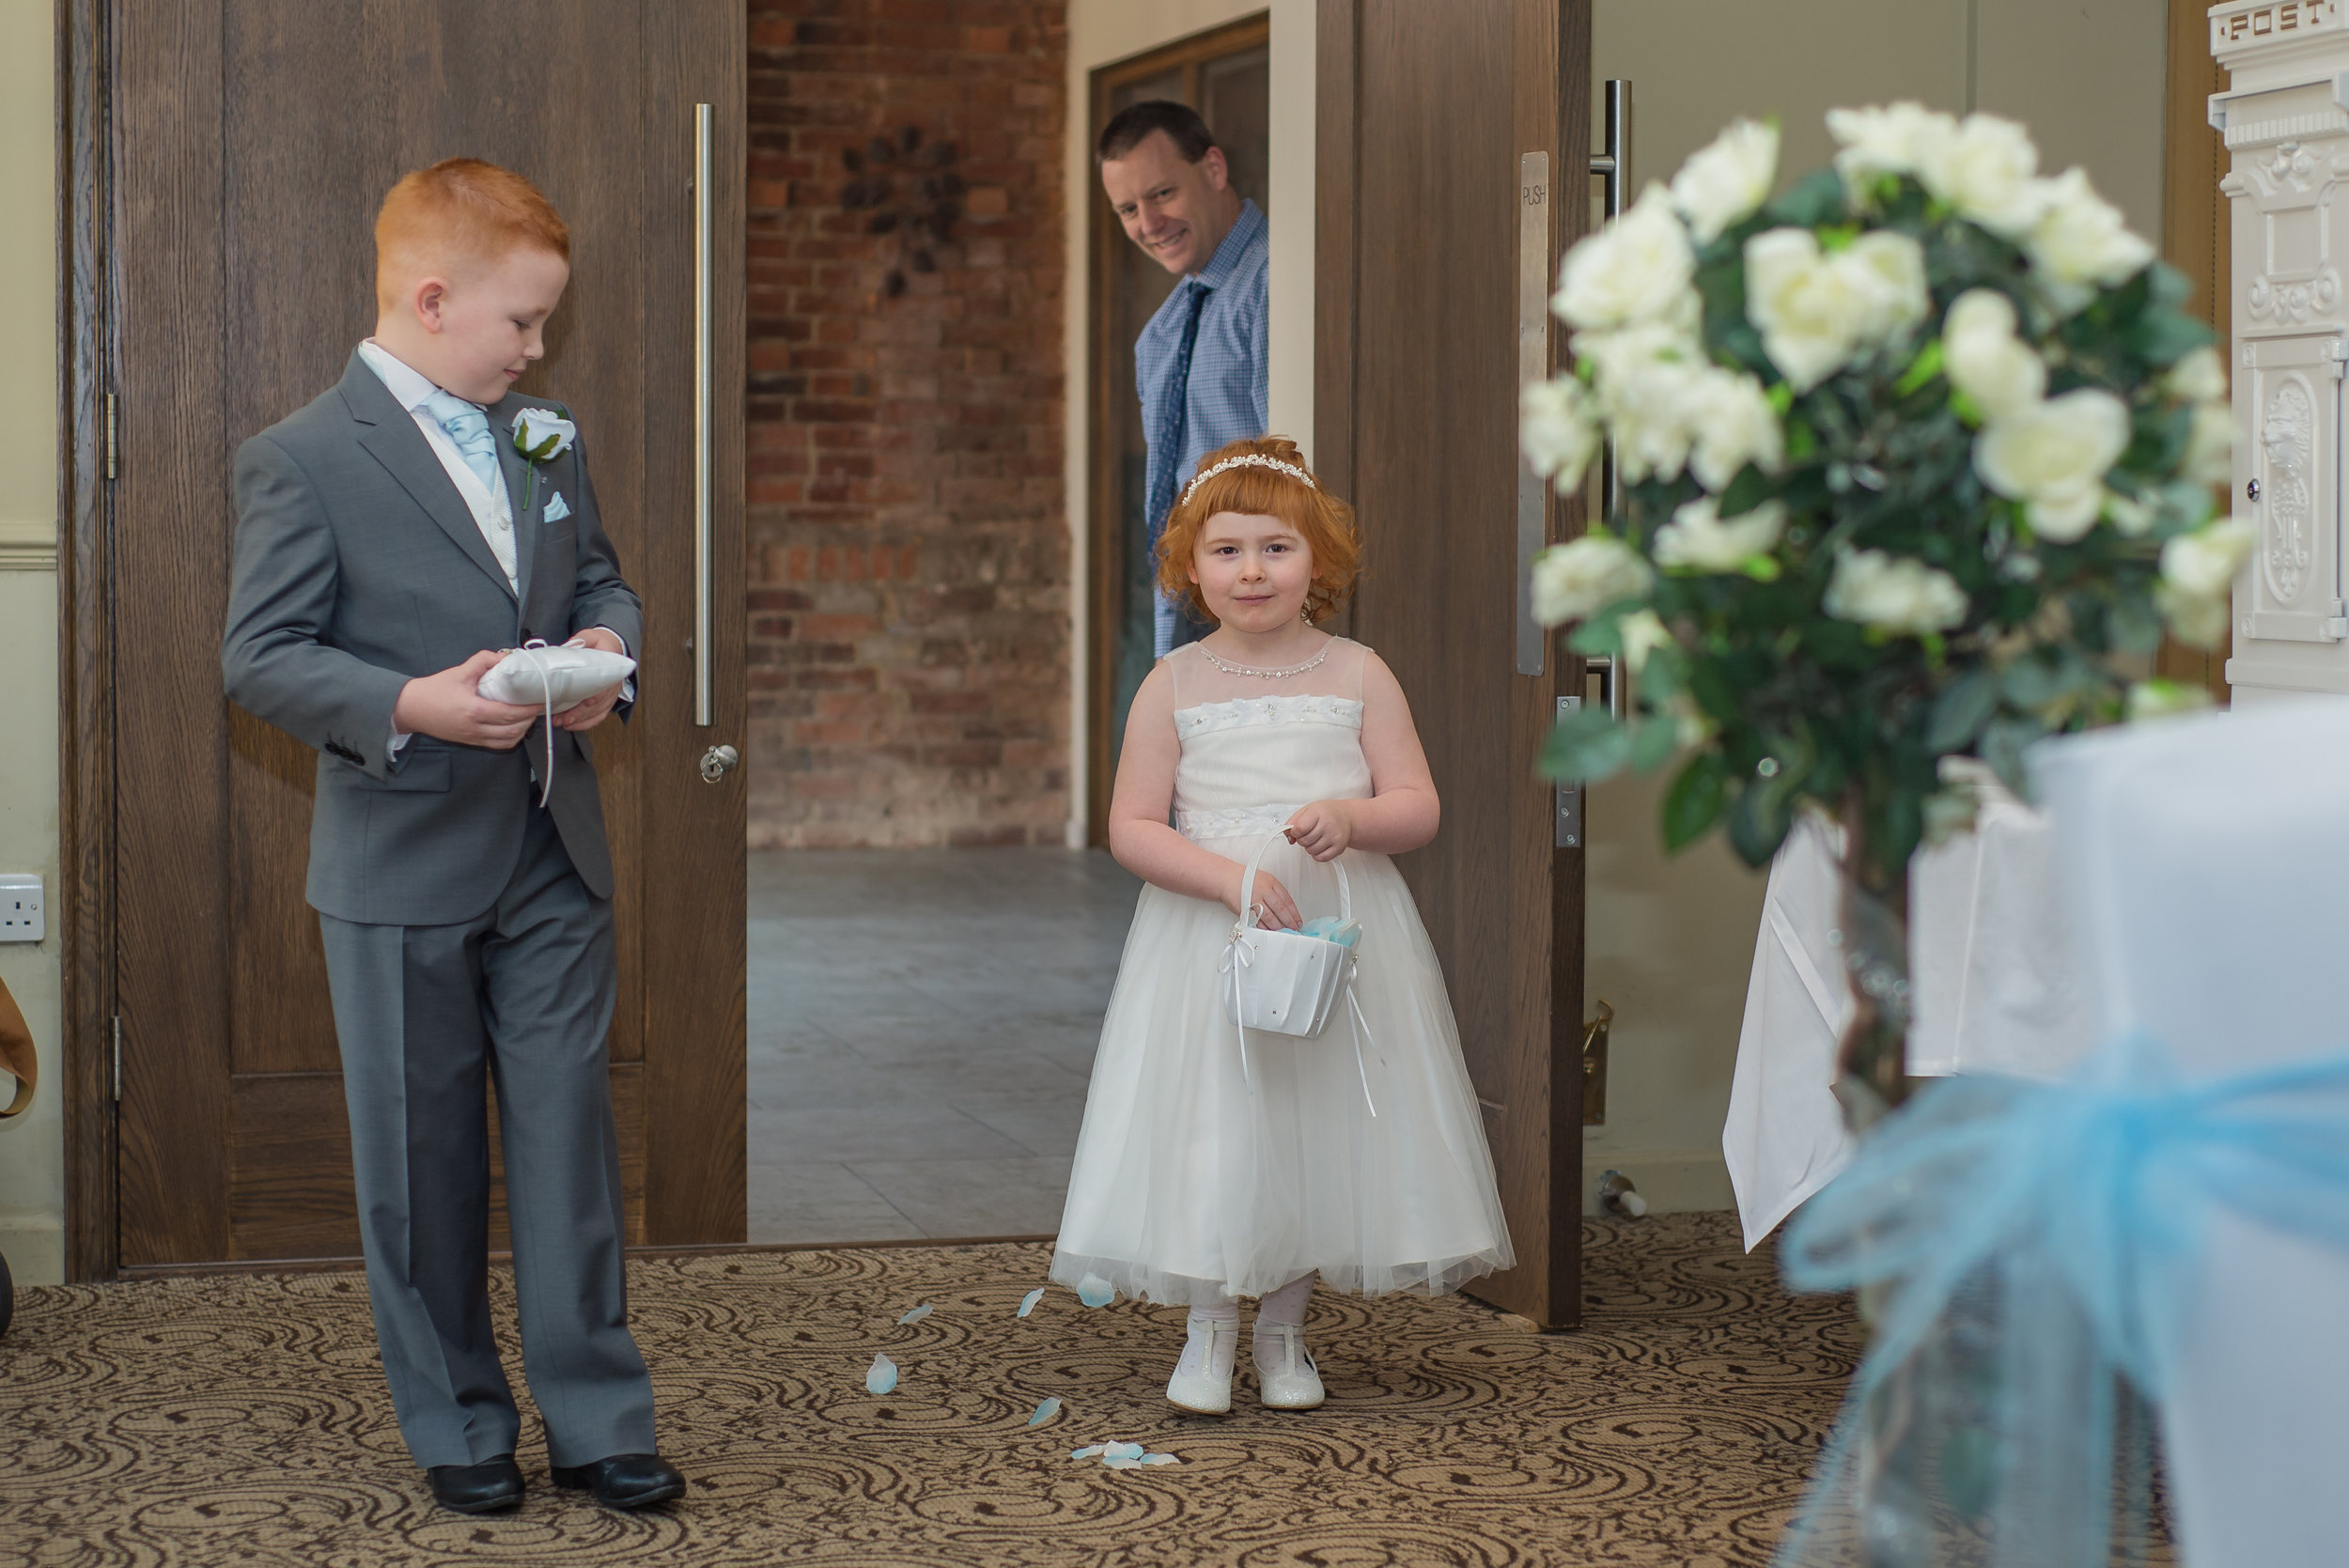 wedding photography and wedding videography, flowergirl and page boy walking down the aisle